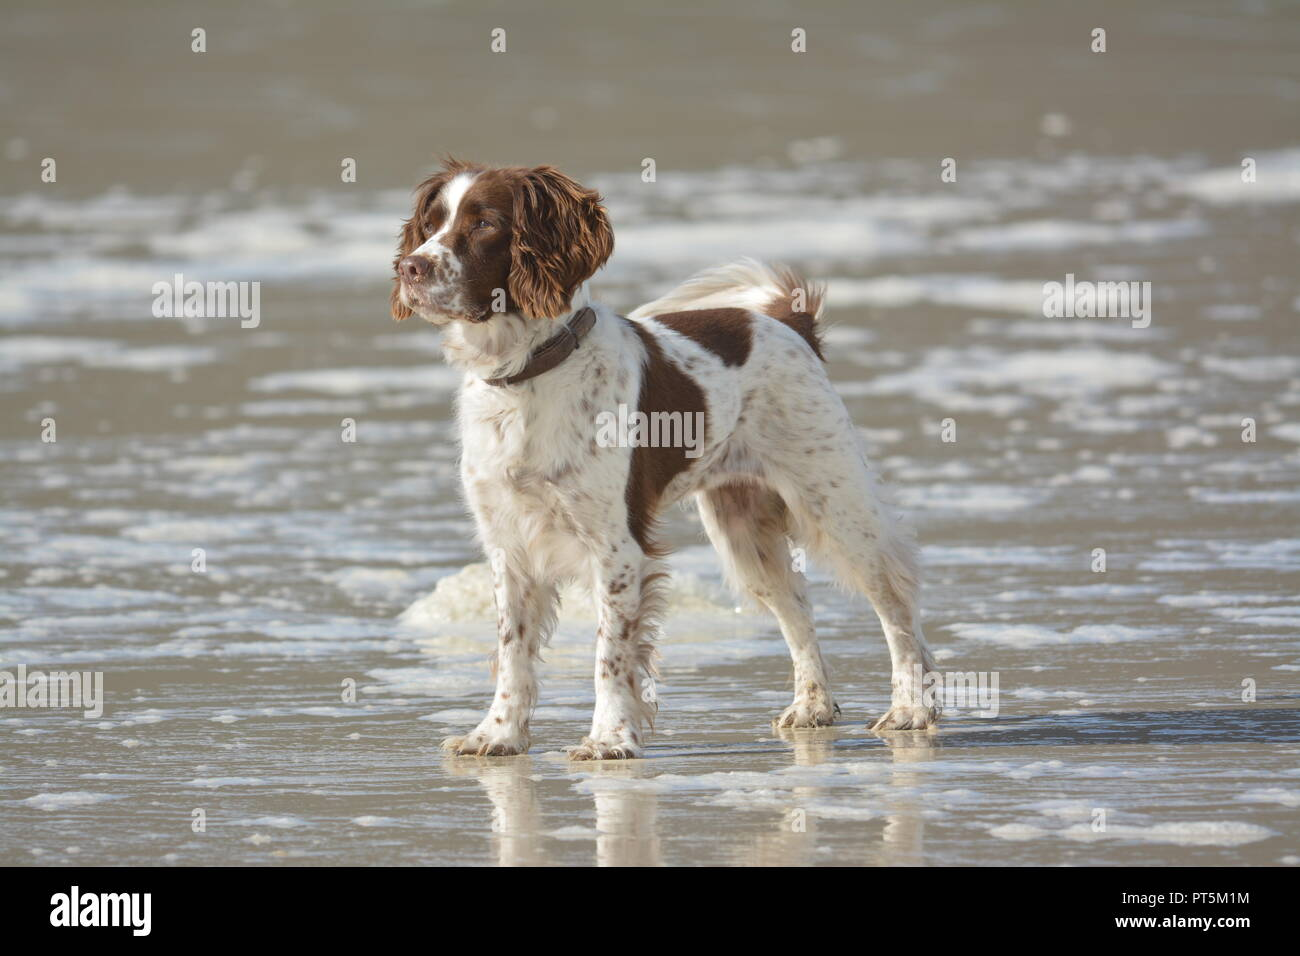 Liver and white English Springer Spaniel standing at the edge of the sea looking into the distance on a sandy beach with sea foam re mans best friend - Stock Image